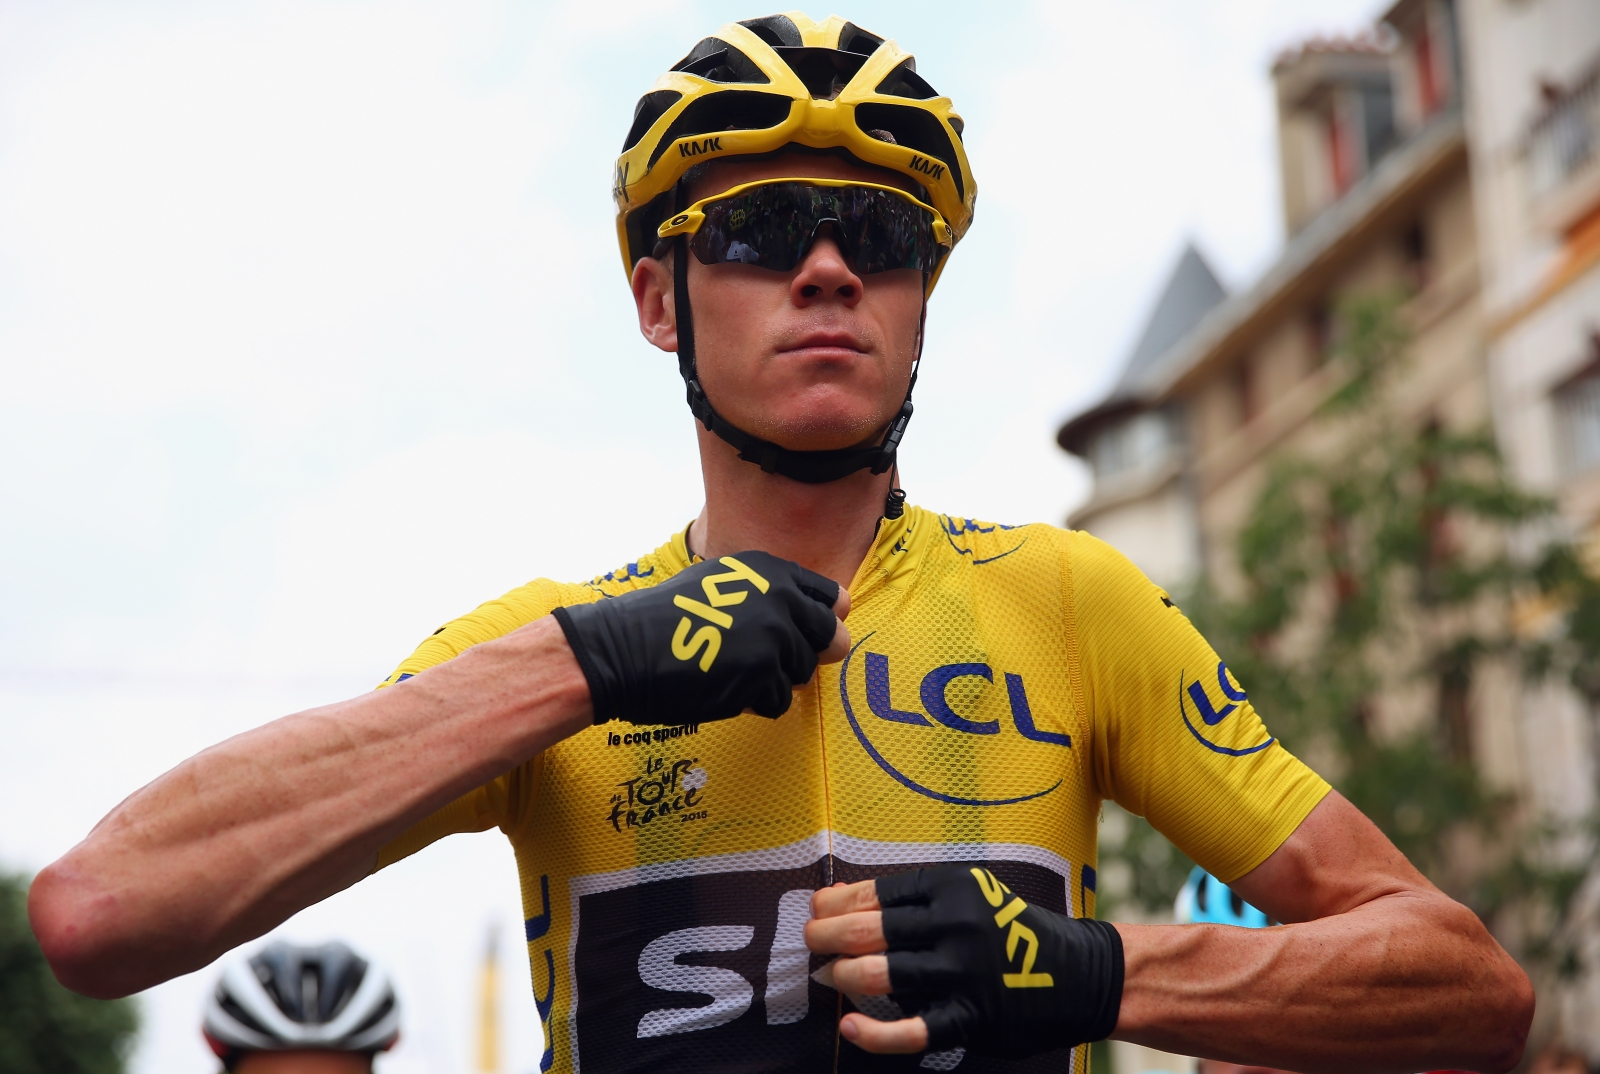 Chris froome of team sky in the yellow jersey at the tour de france